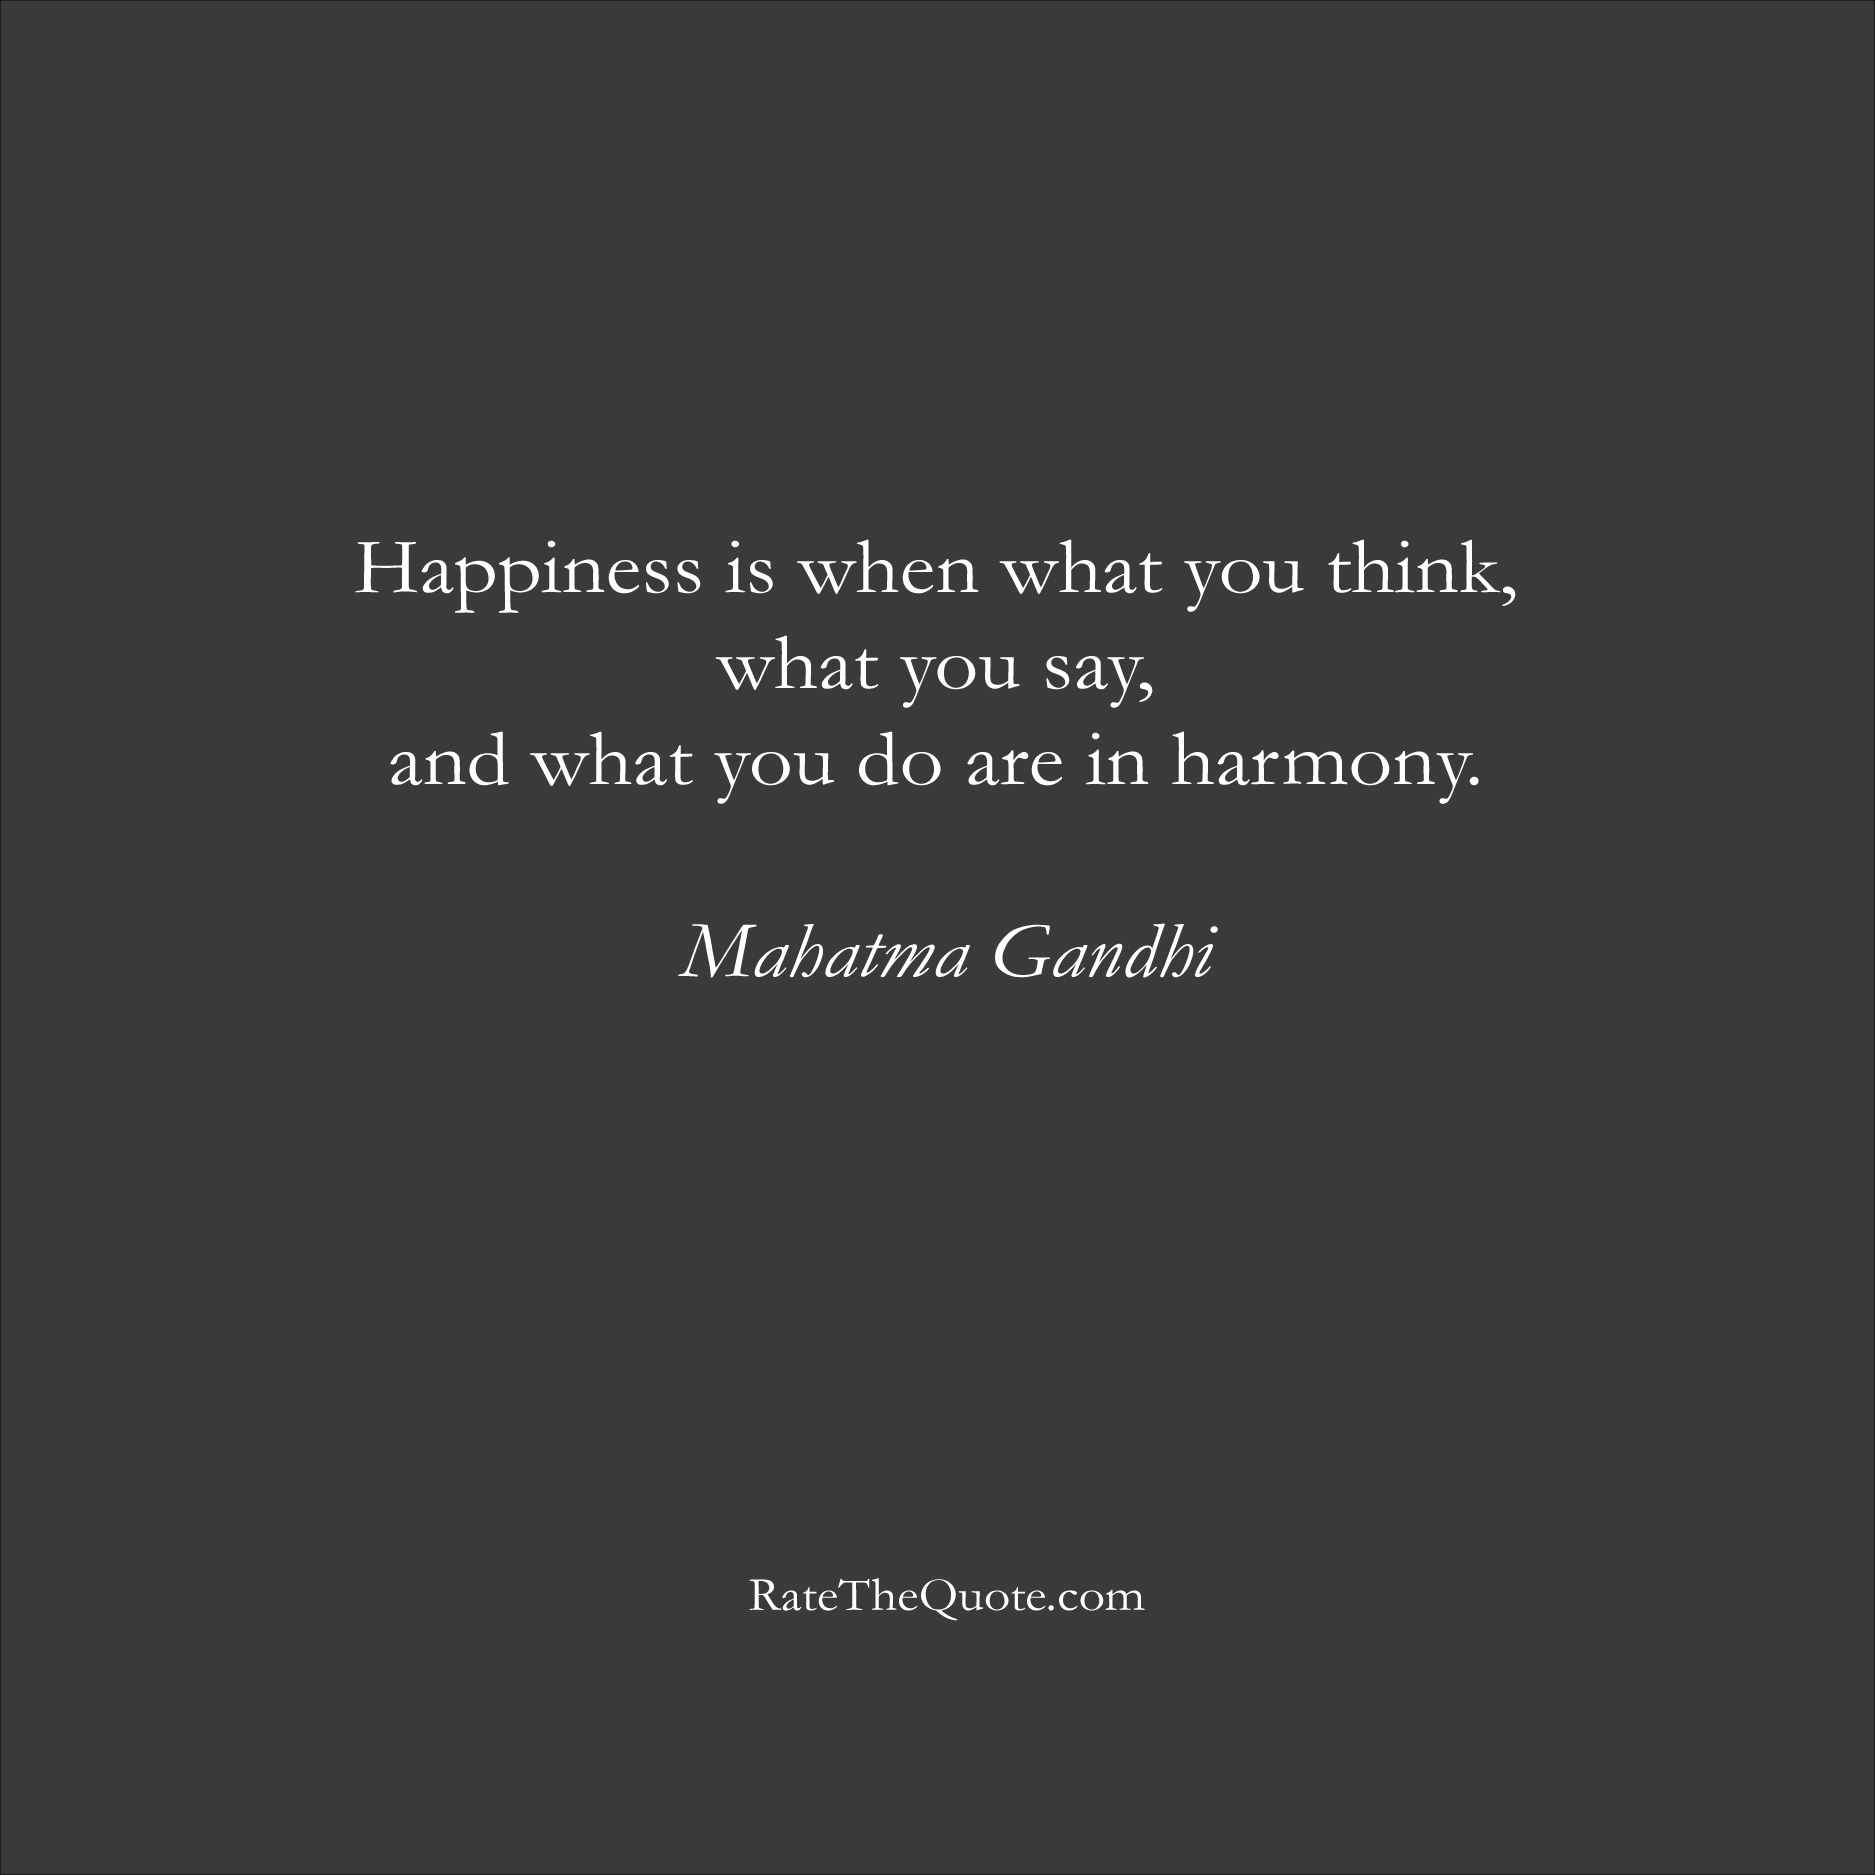 Happiness Quotes Happiness is when what you think, what you say, and what you do are in harmony. Mahatma Gandhi